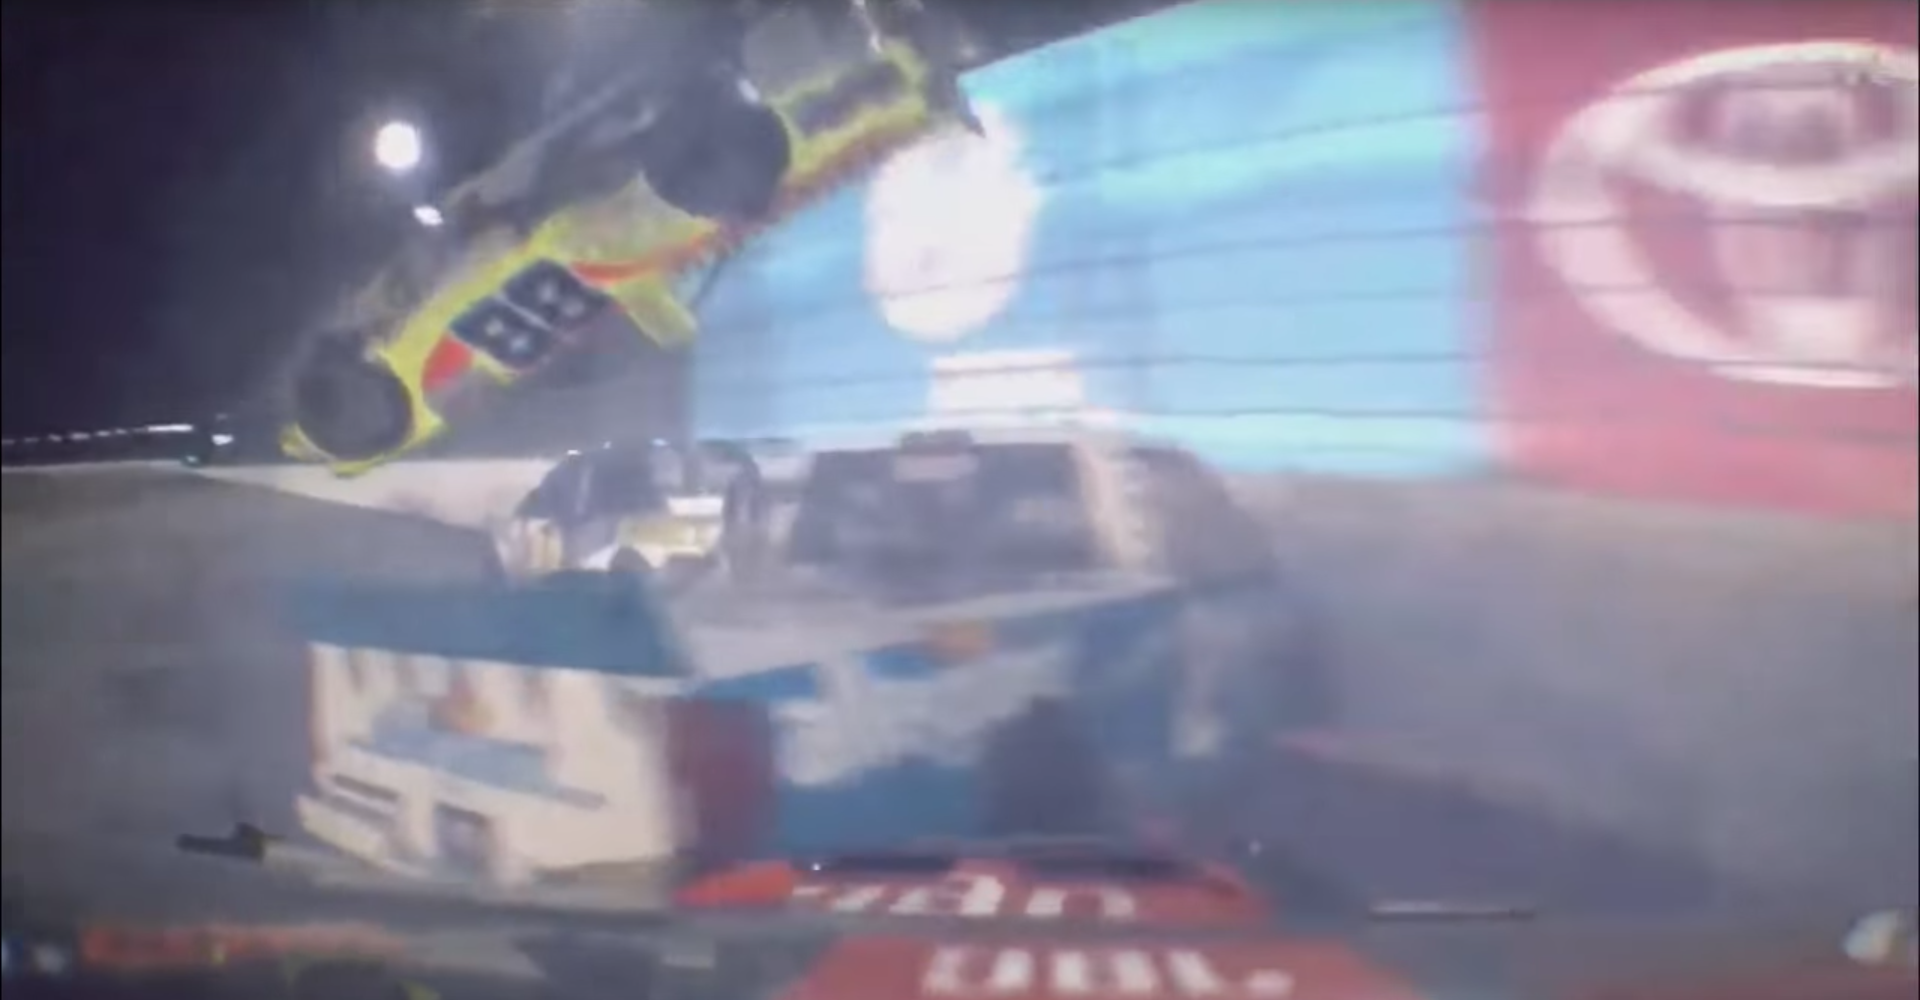 Everyone Escapes Unhurt From This Crazy NASCAR Truck Crash